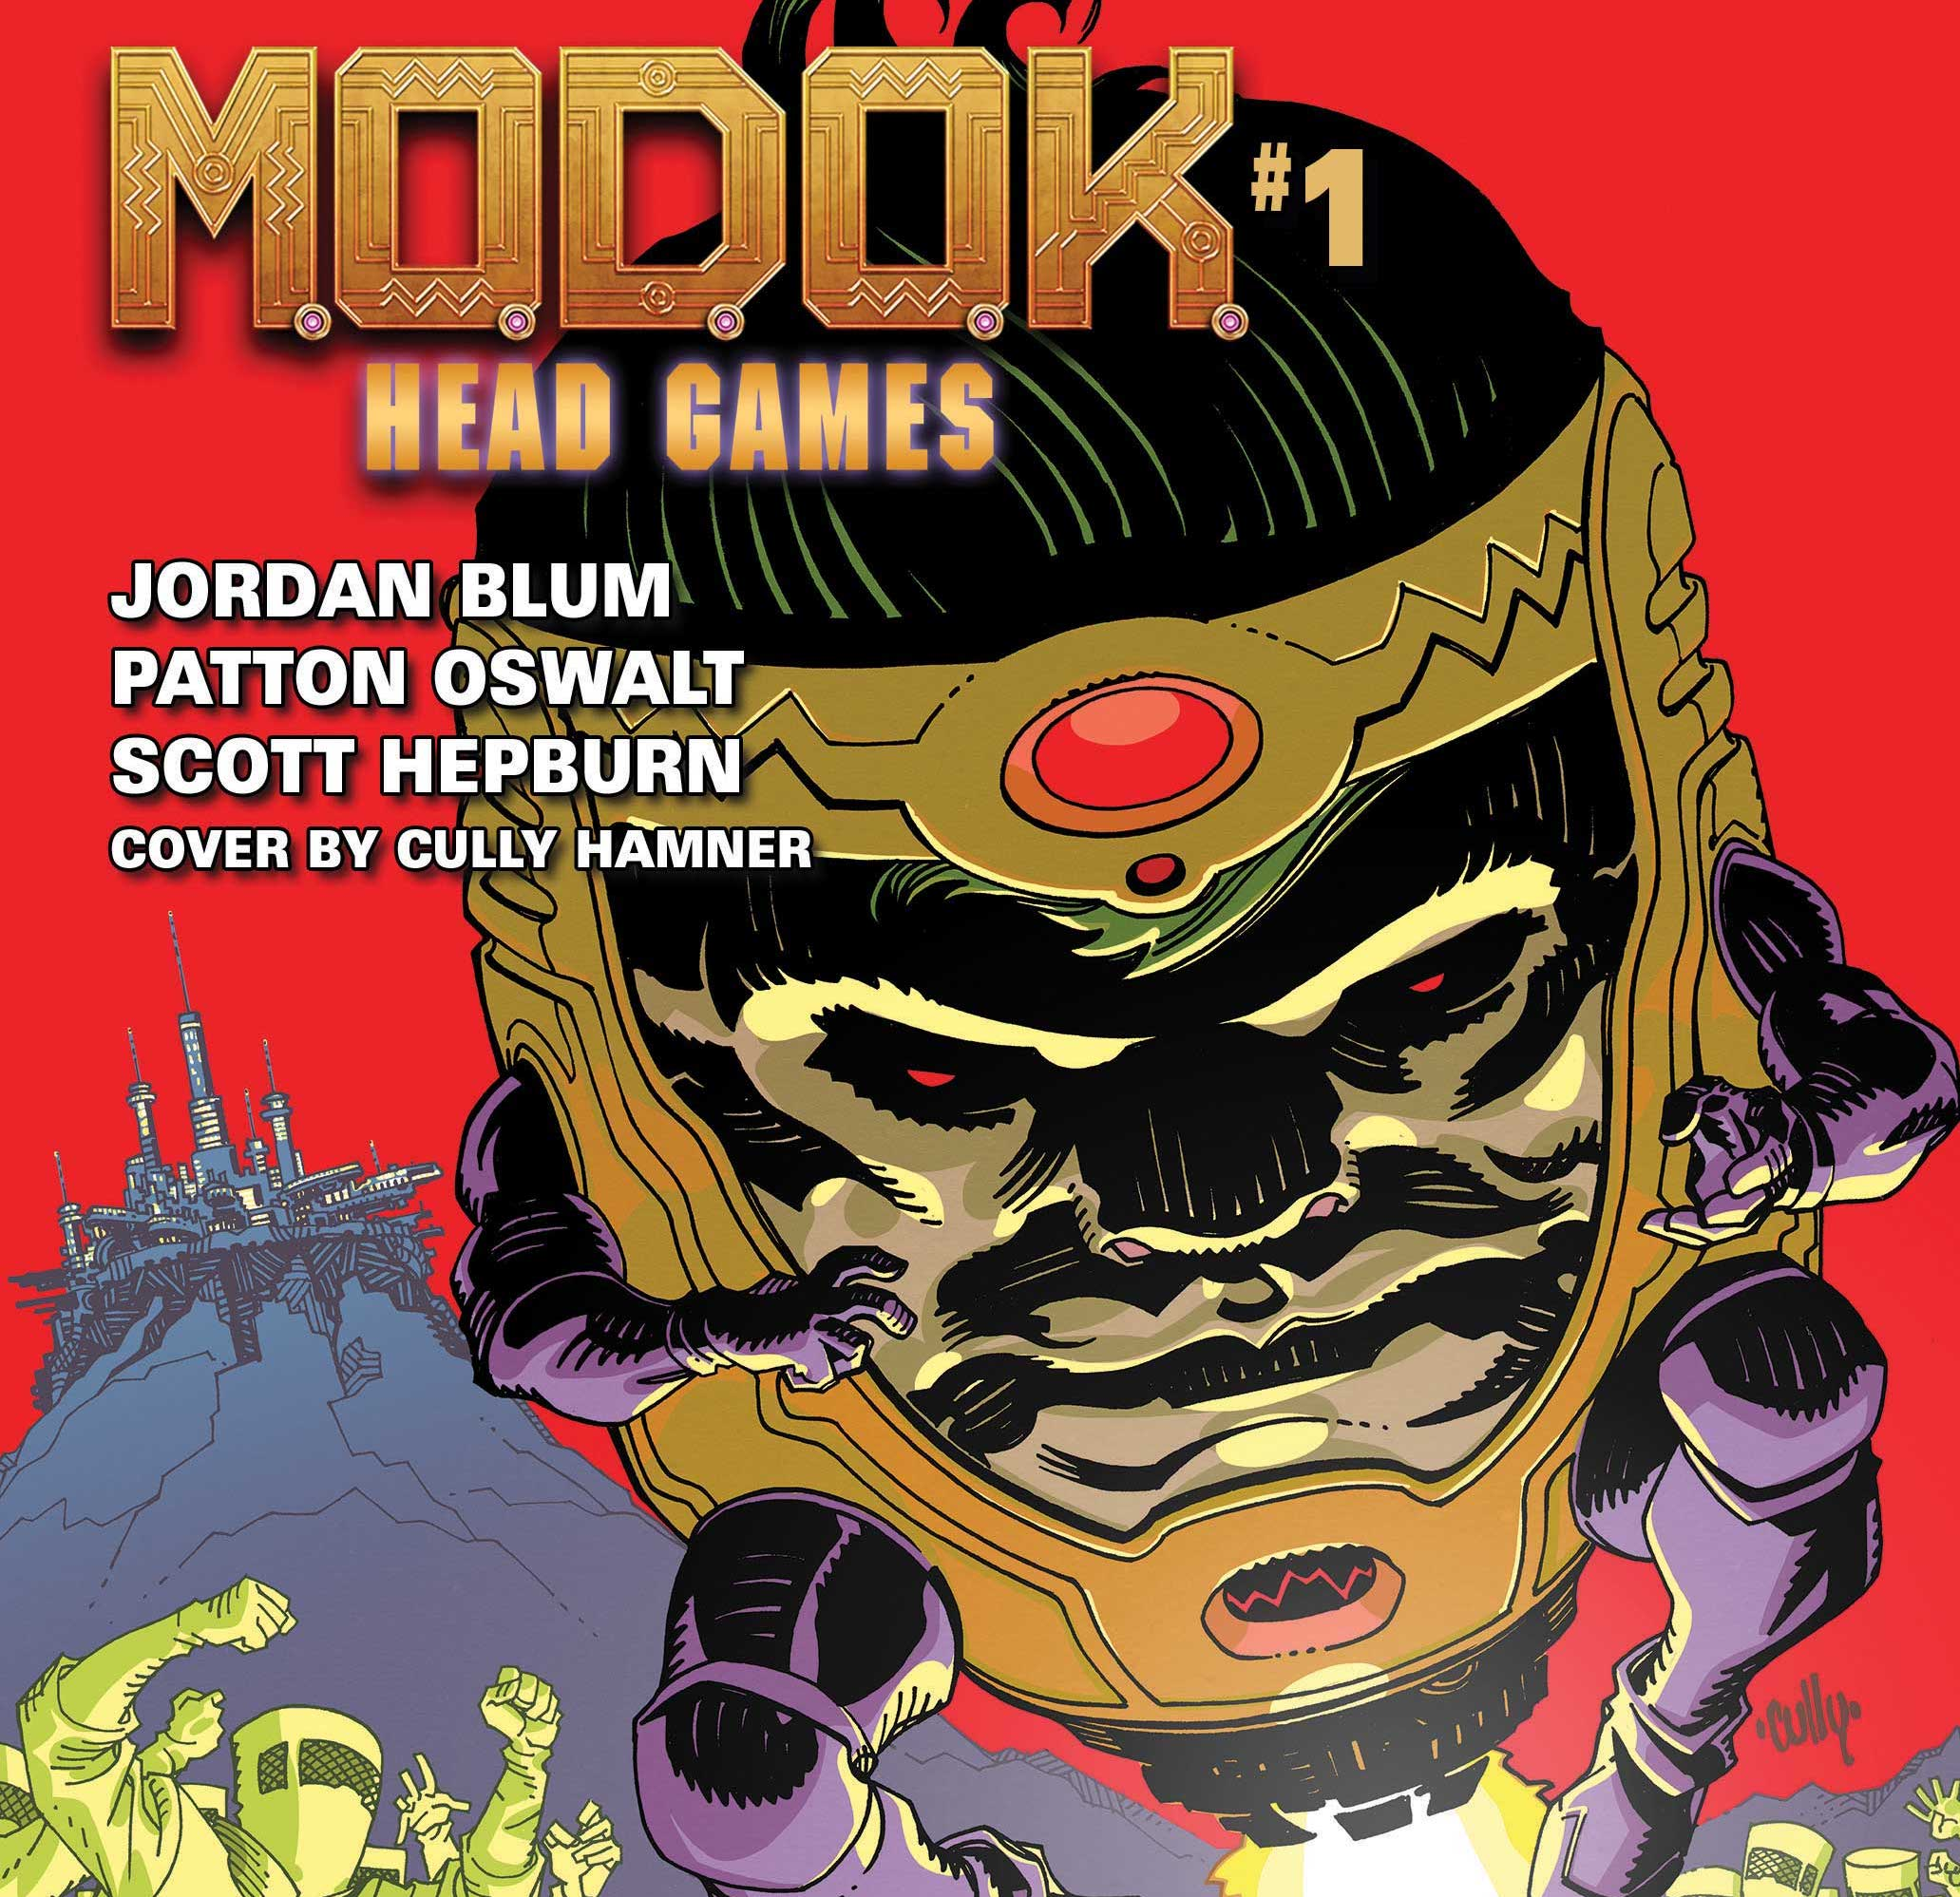 Marvel launches 'M.O.D.O.K.: Head Games' teaser